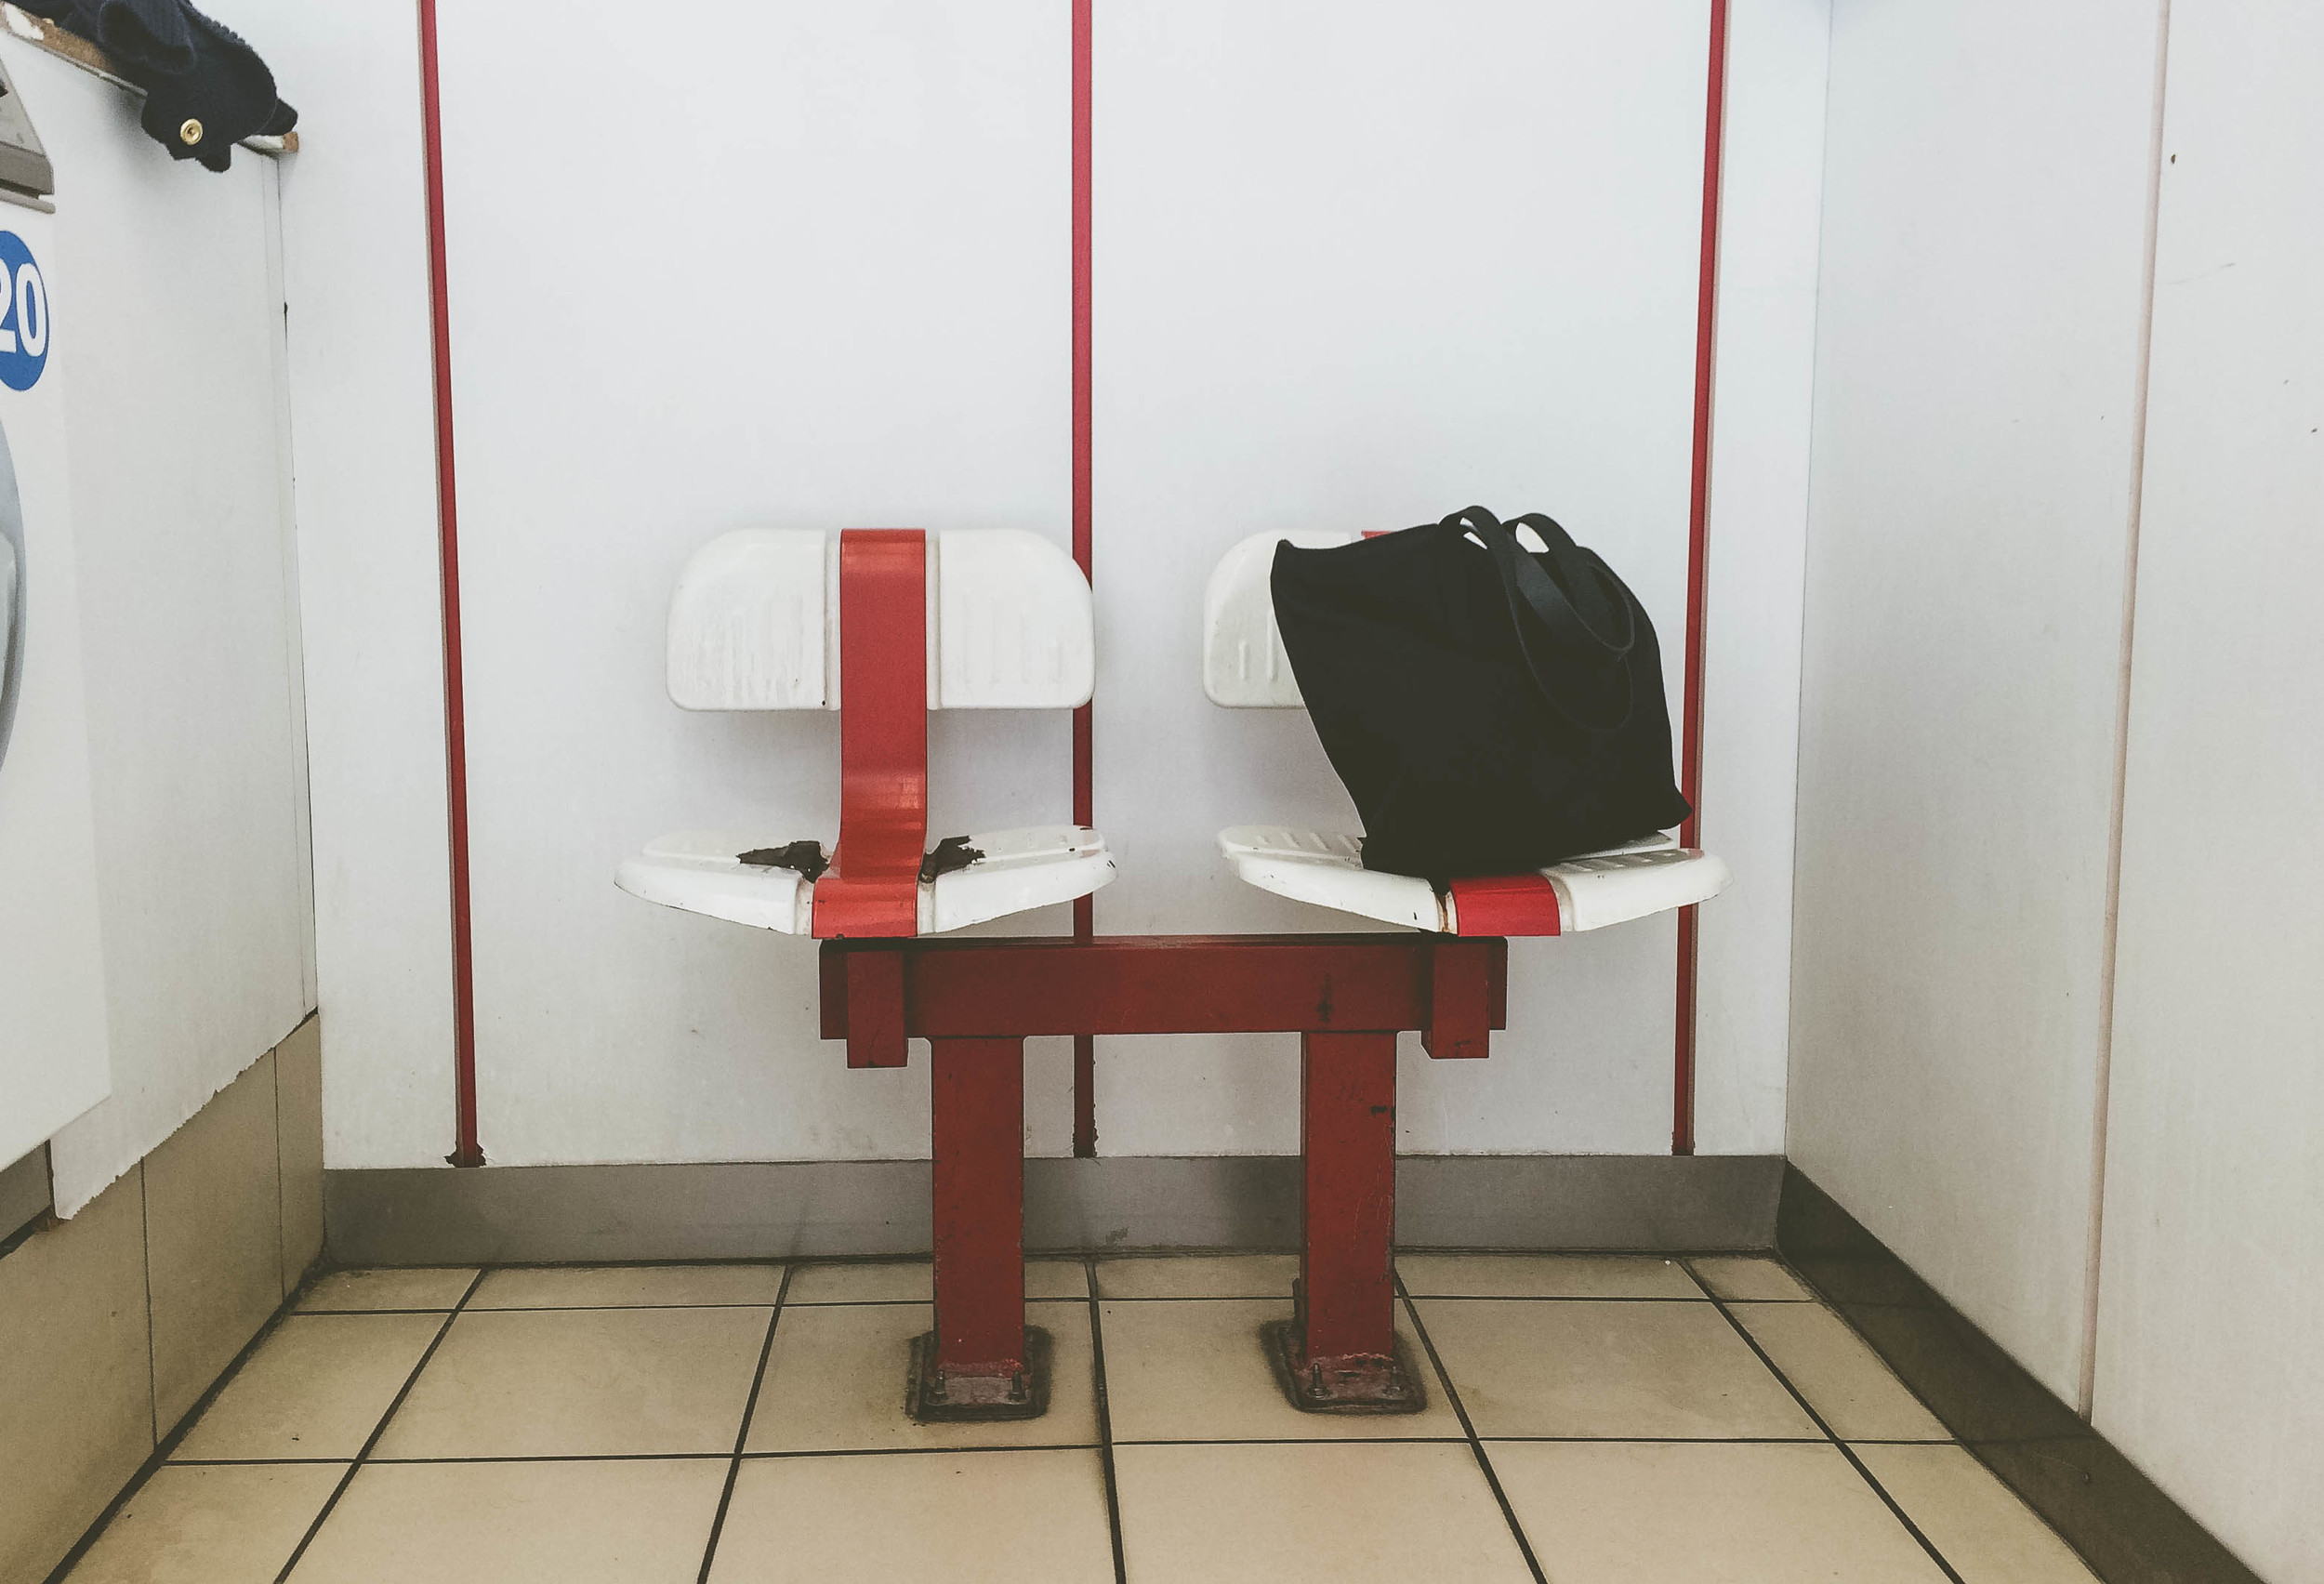 Waiting for laundry to finish at a  laverie  in Paris.